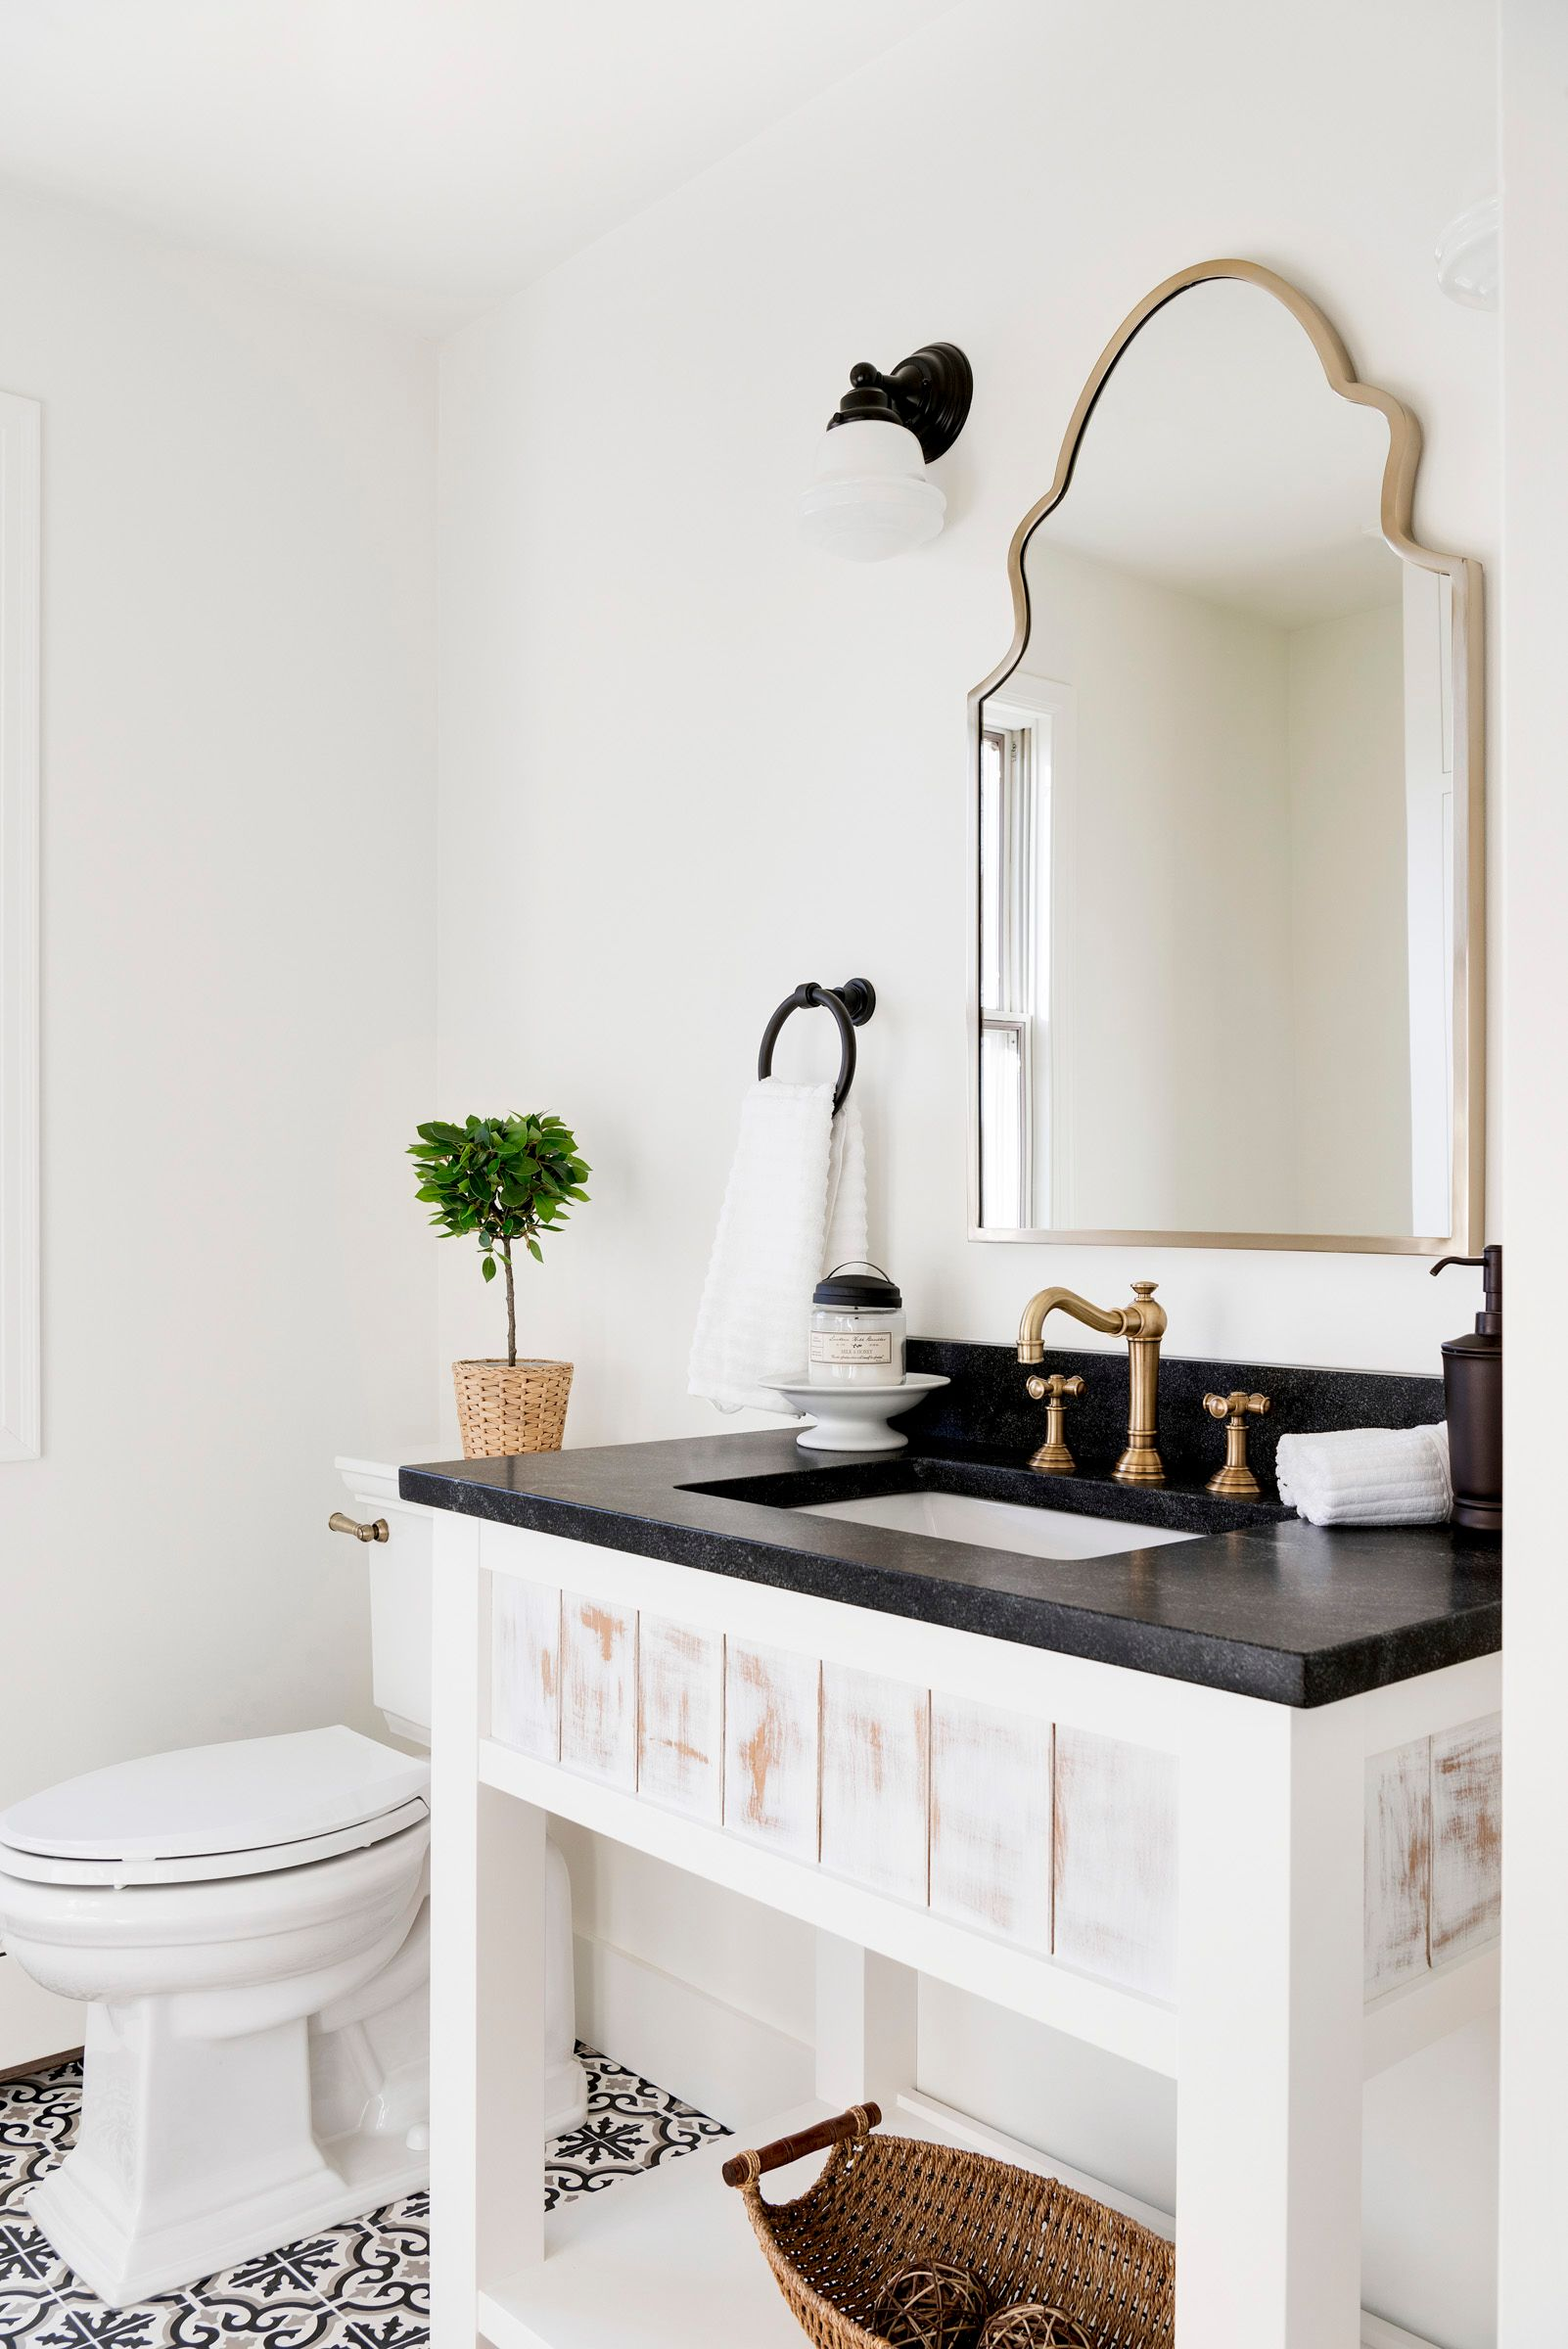 Country-style bathroom in white and gold